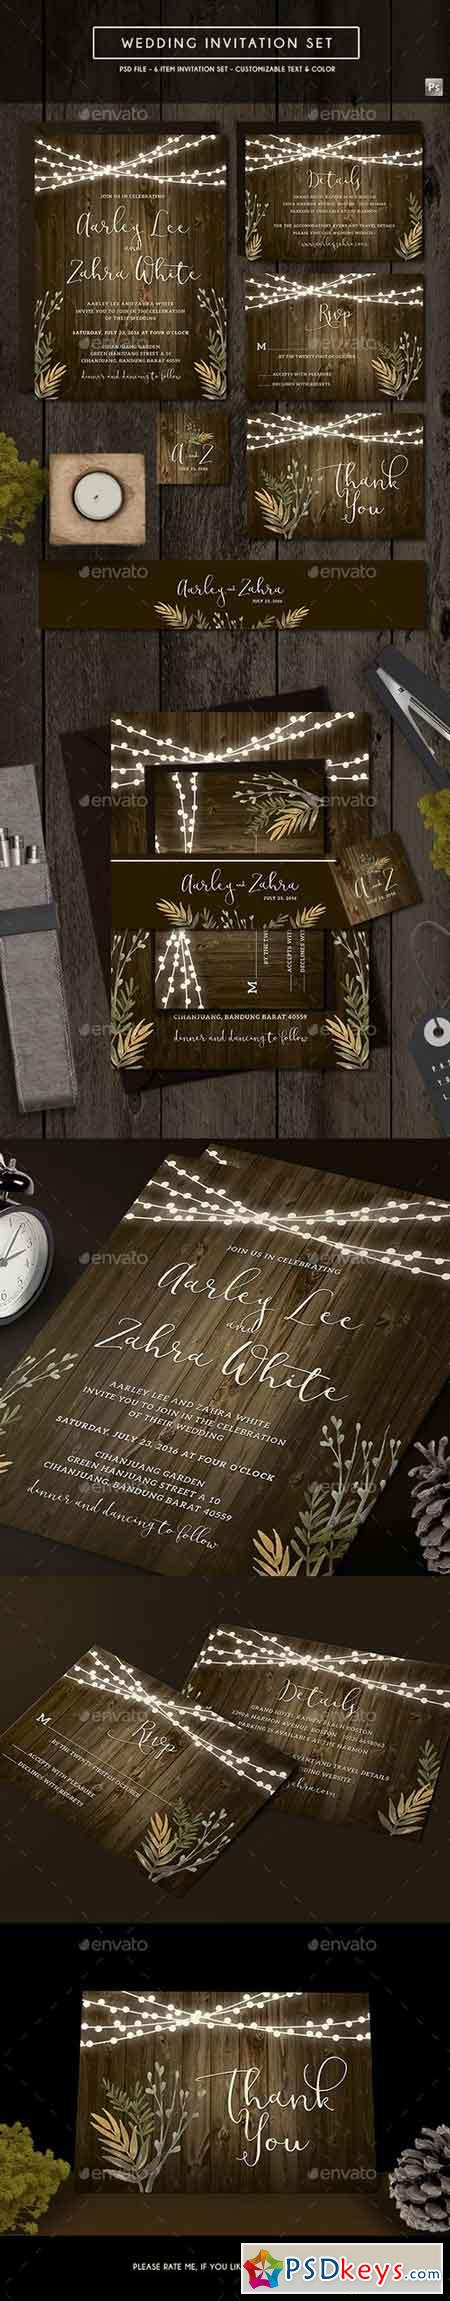 Rustic Wedding Invitation 19580424